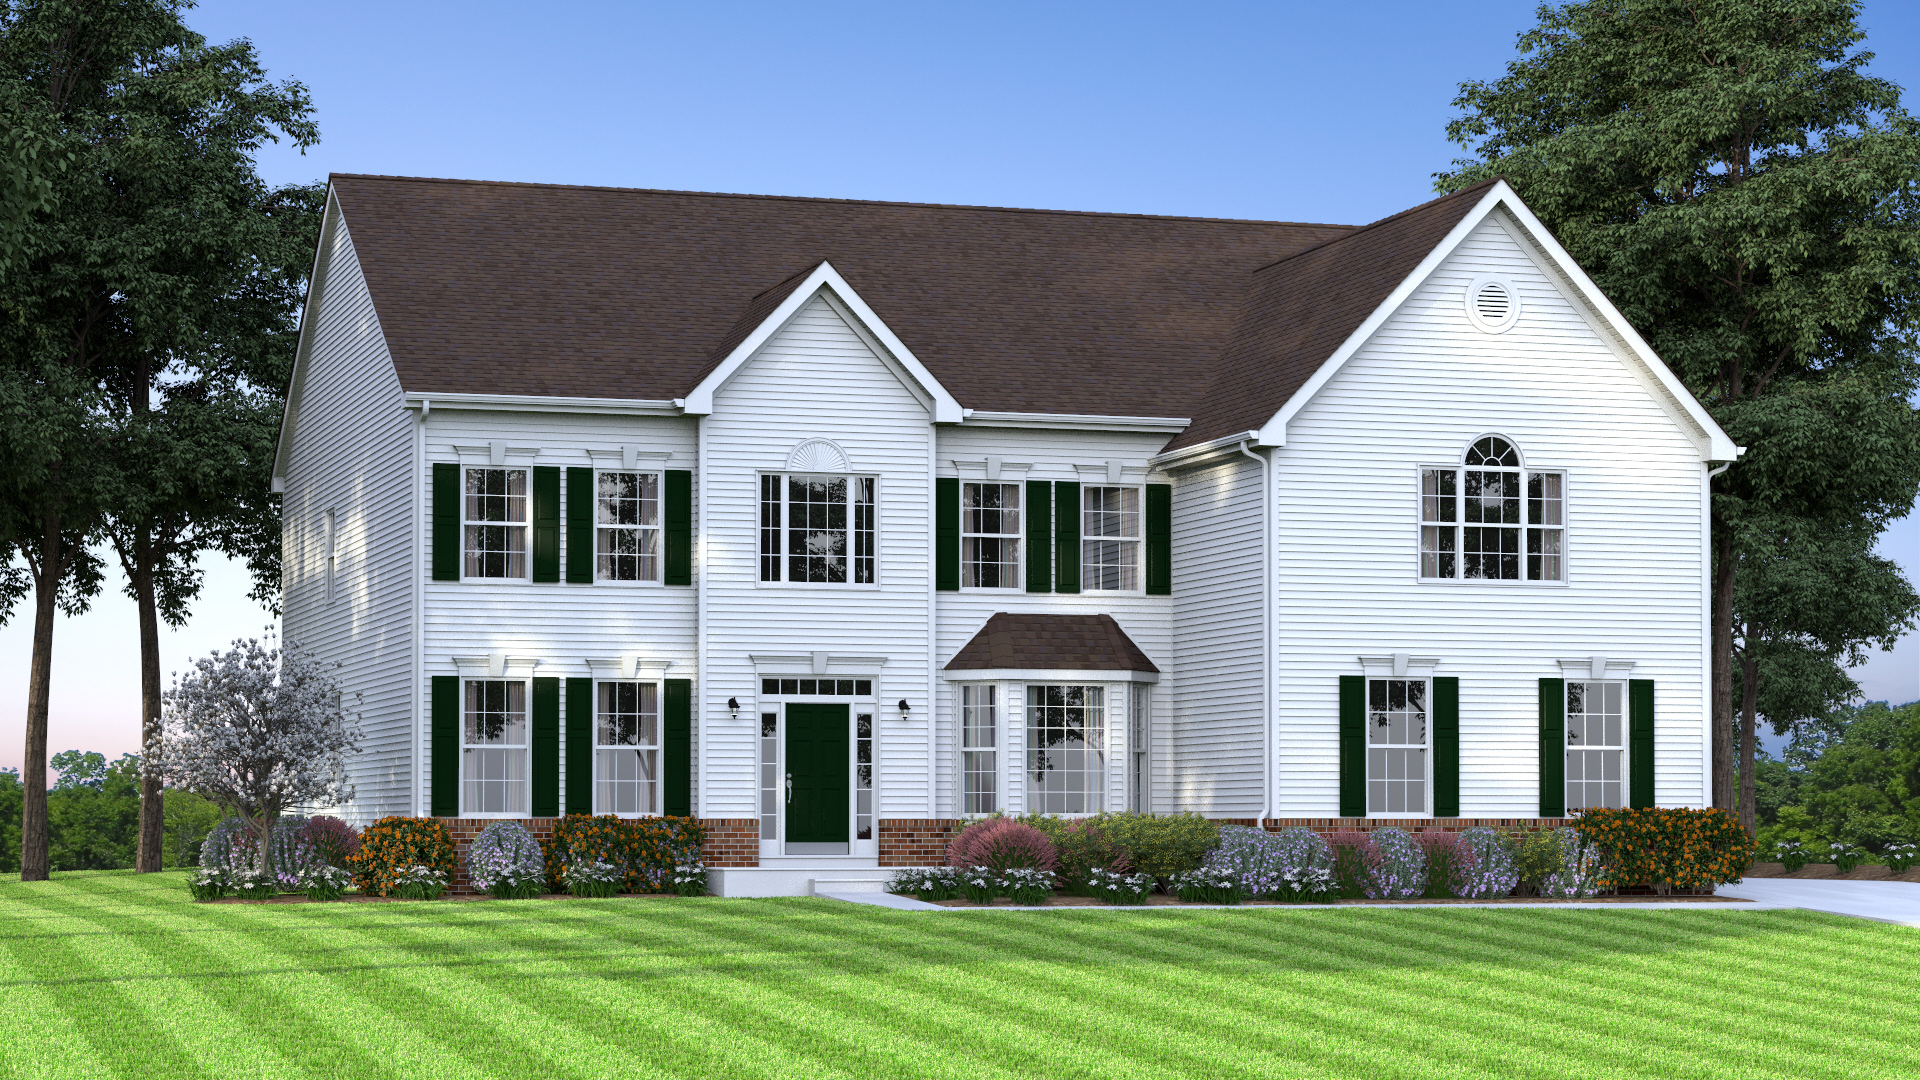 The Century  4,200 sf / 4 br / 2.5 ba / 2 car garage Starting at $376,990